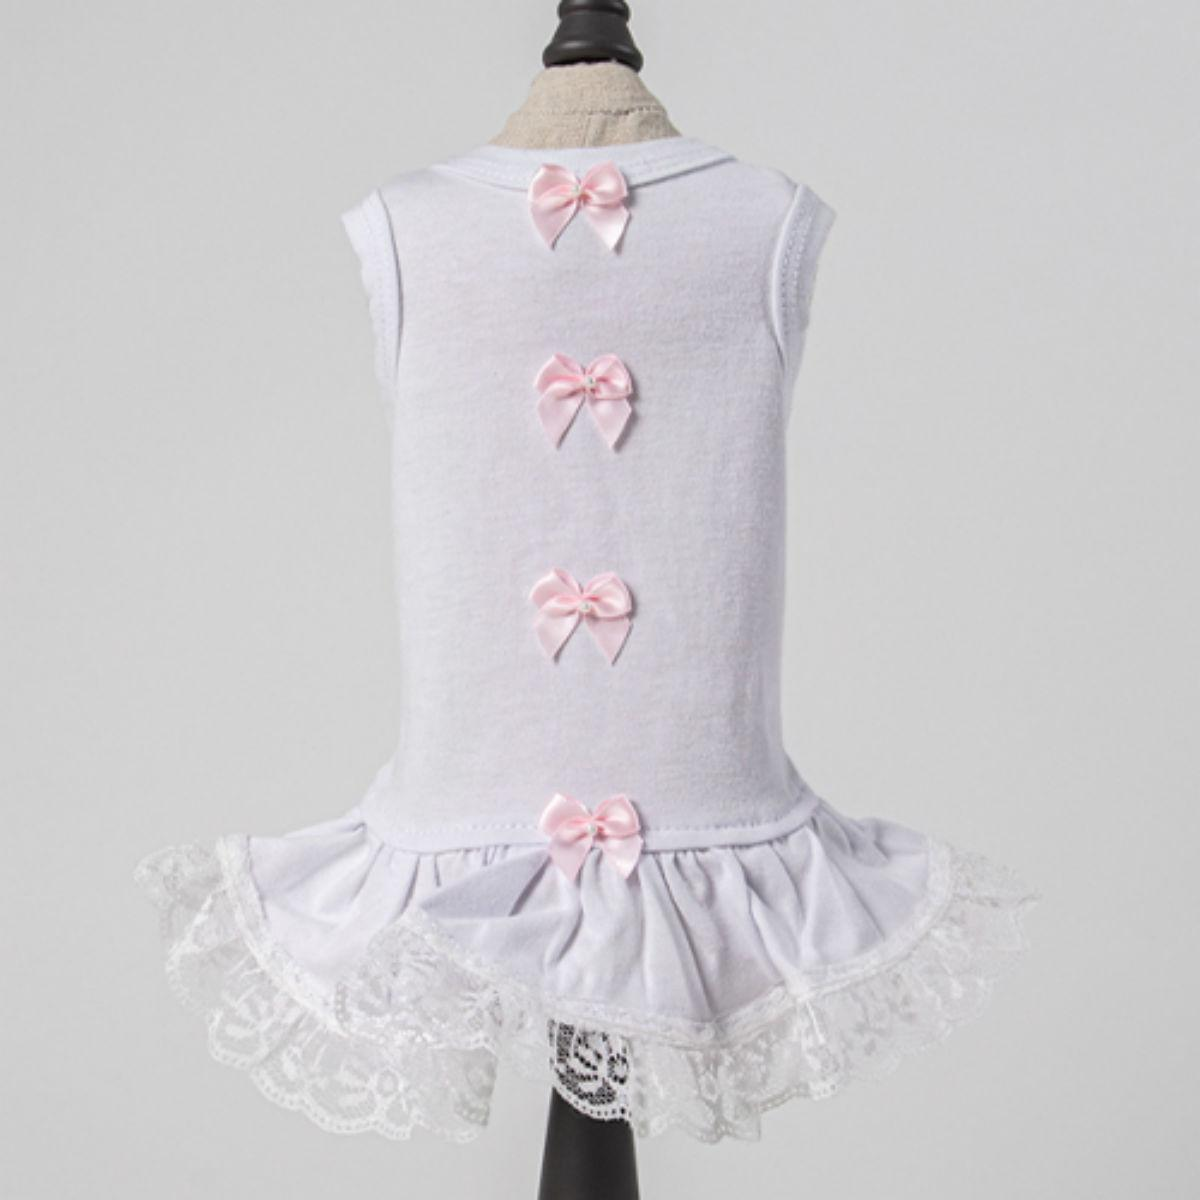 Hello Doggie Sweetheart Dog Dress - Pink and White